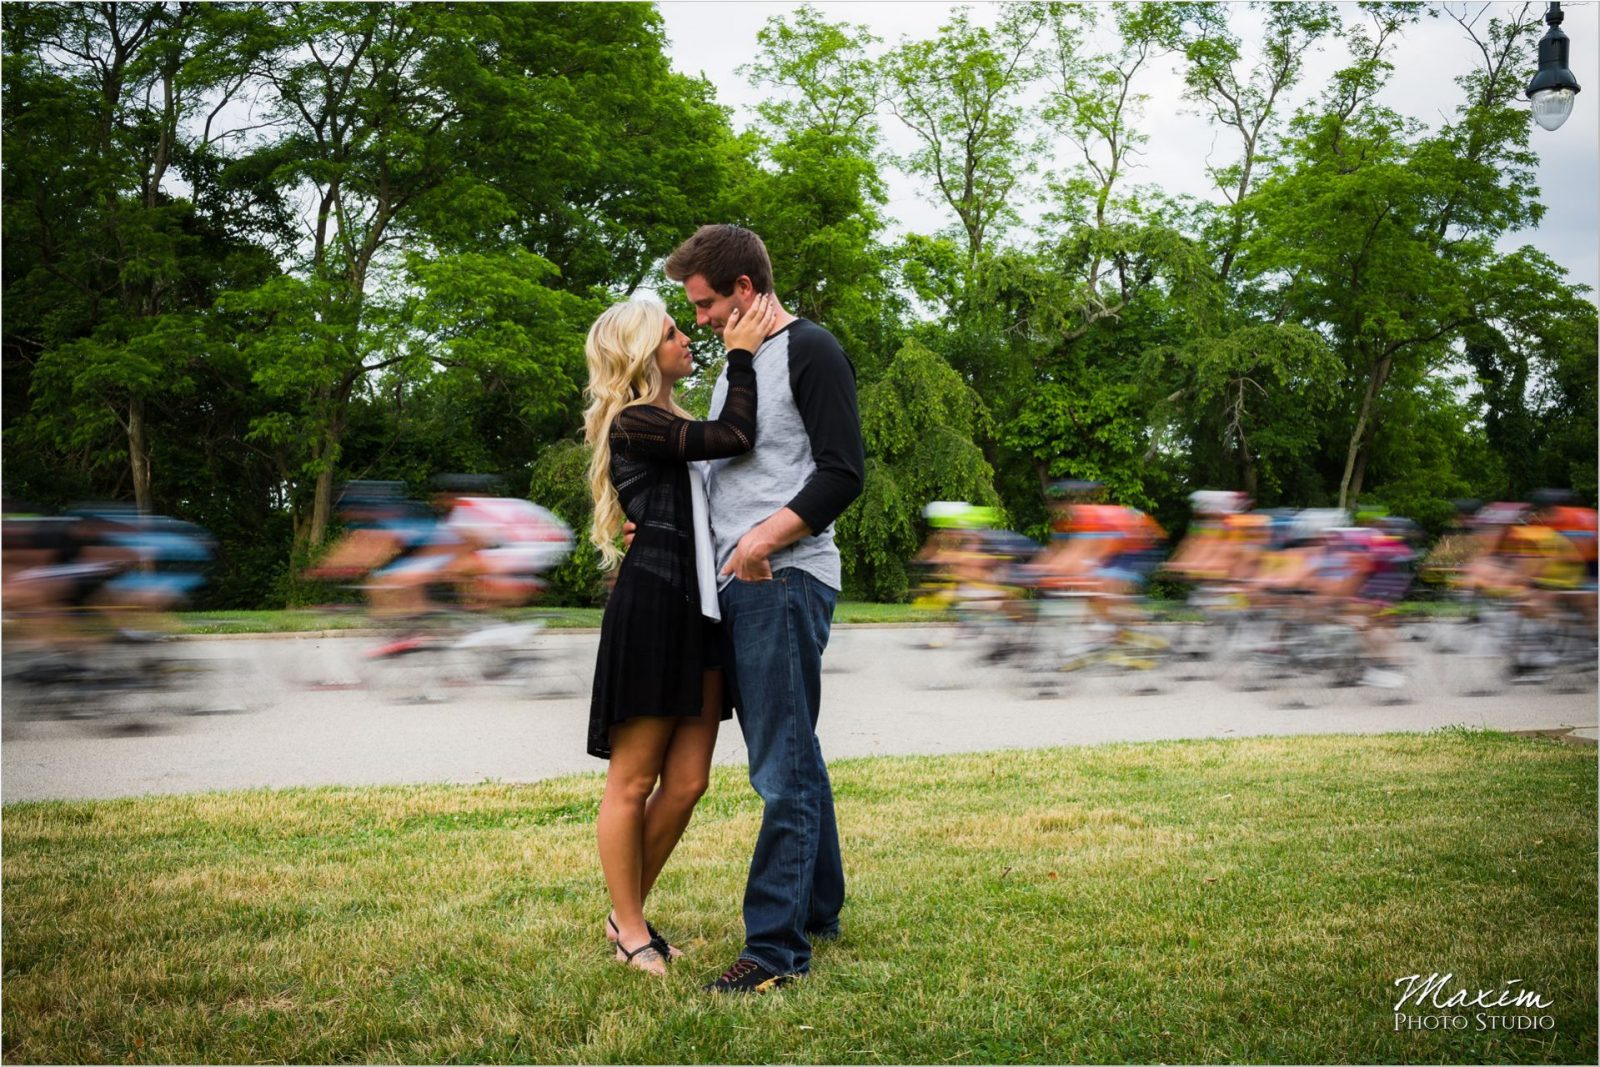 Ault Park bicycle race Summer Engagement